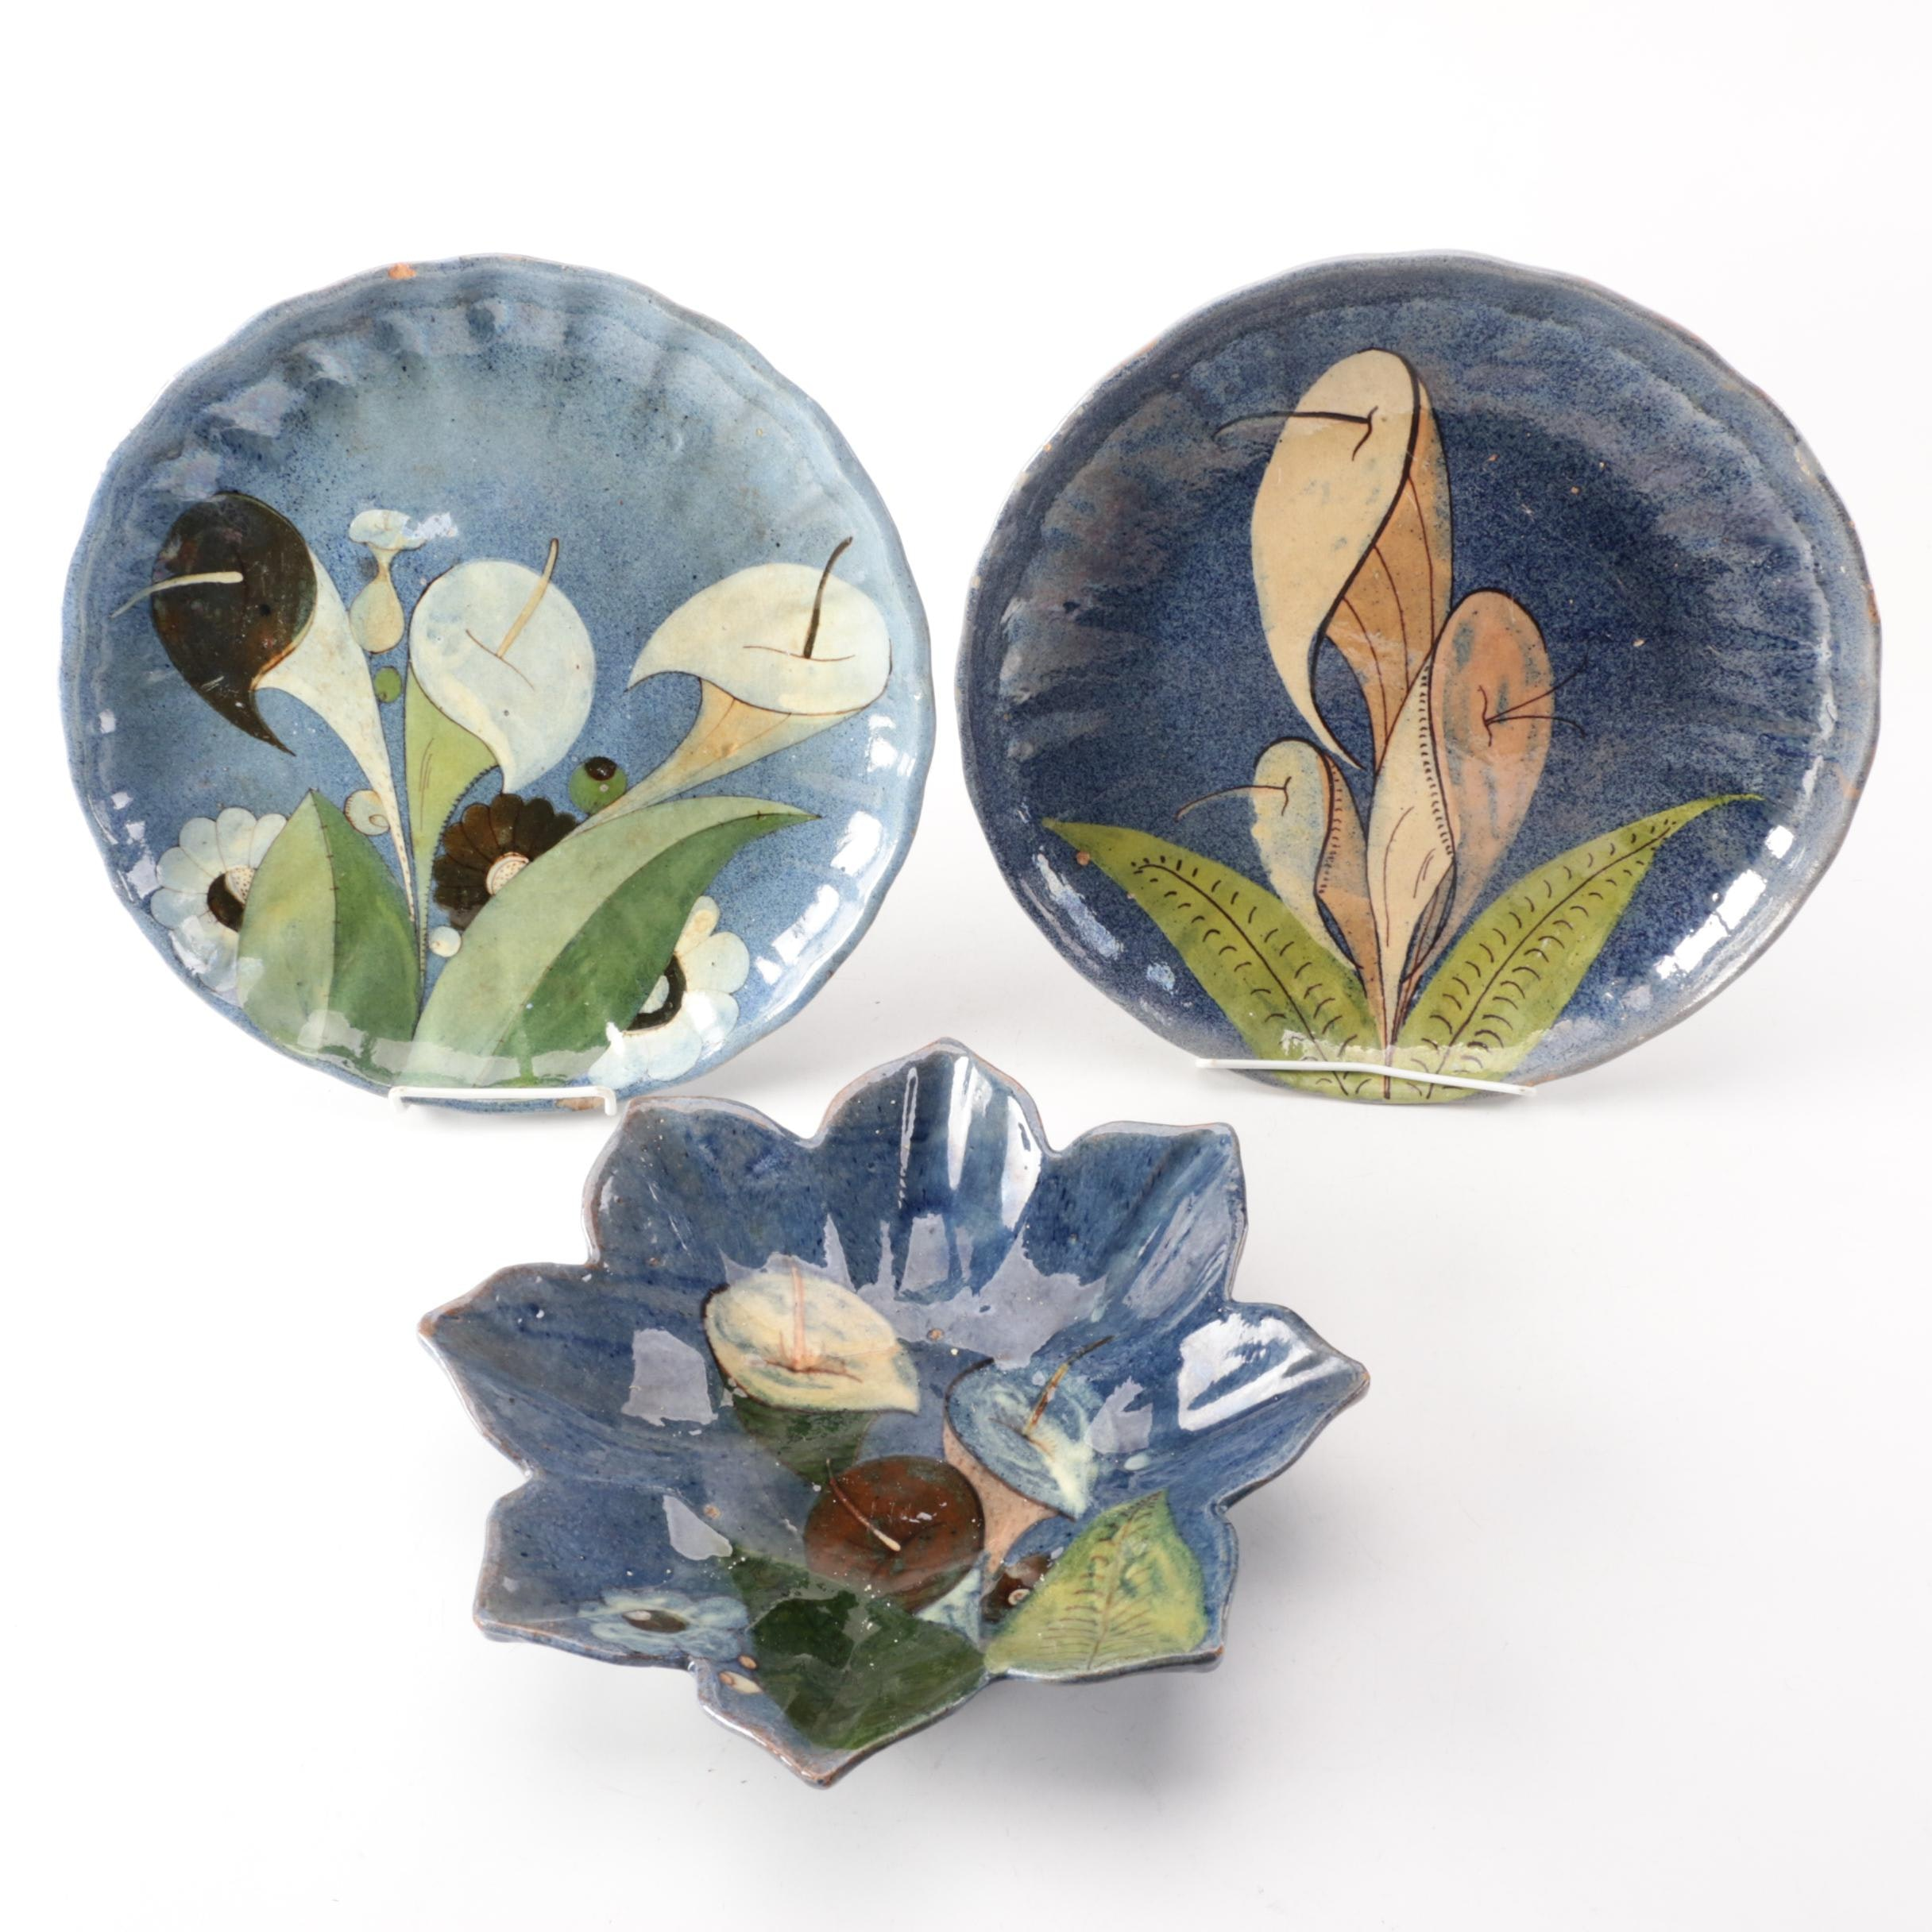 Vintage Mexican Earthenware Serving Plates with Calla Lily Motif